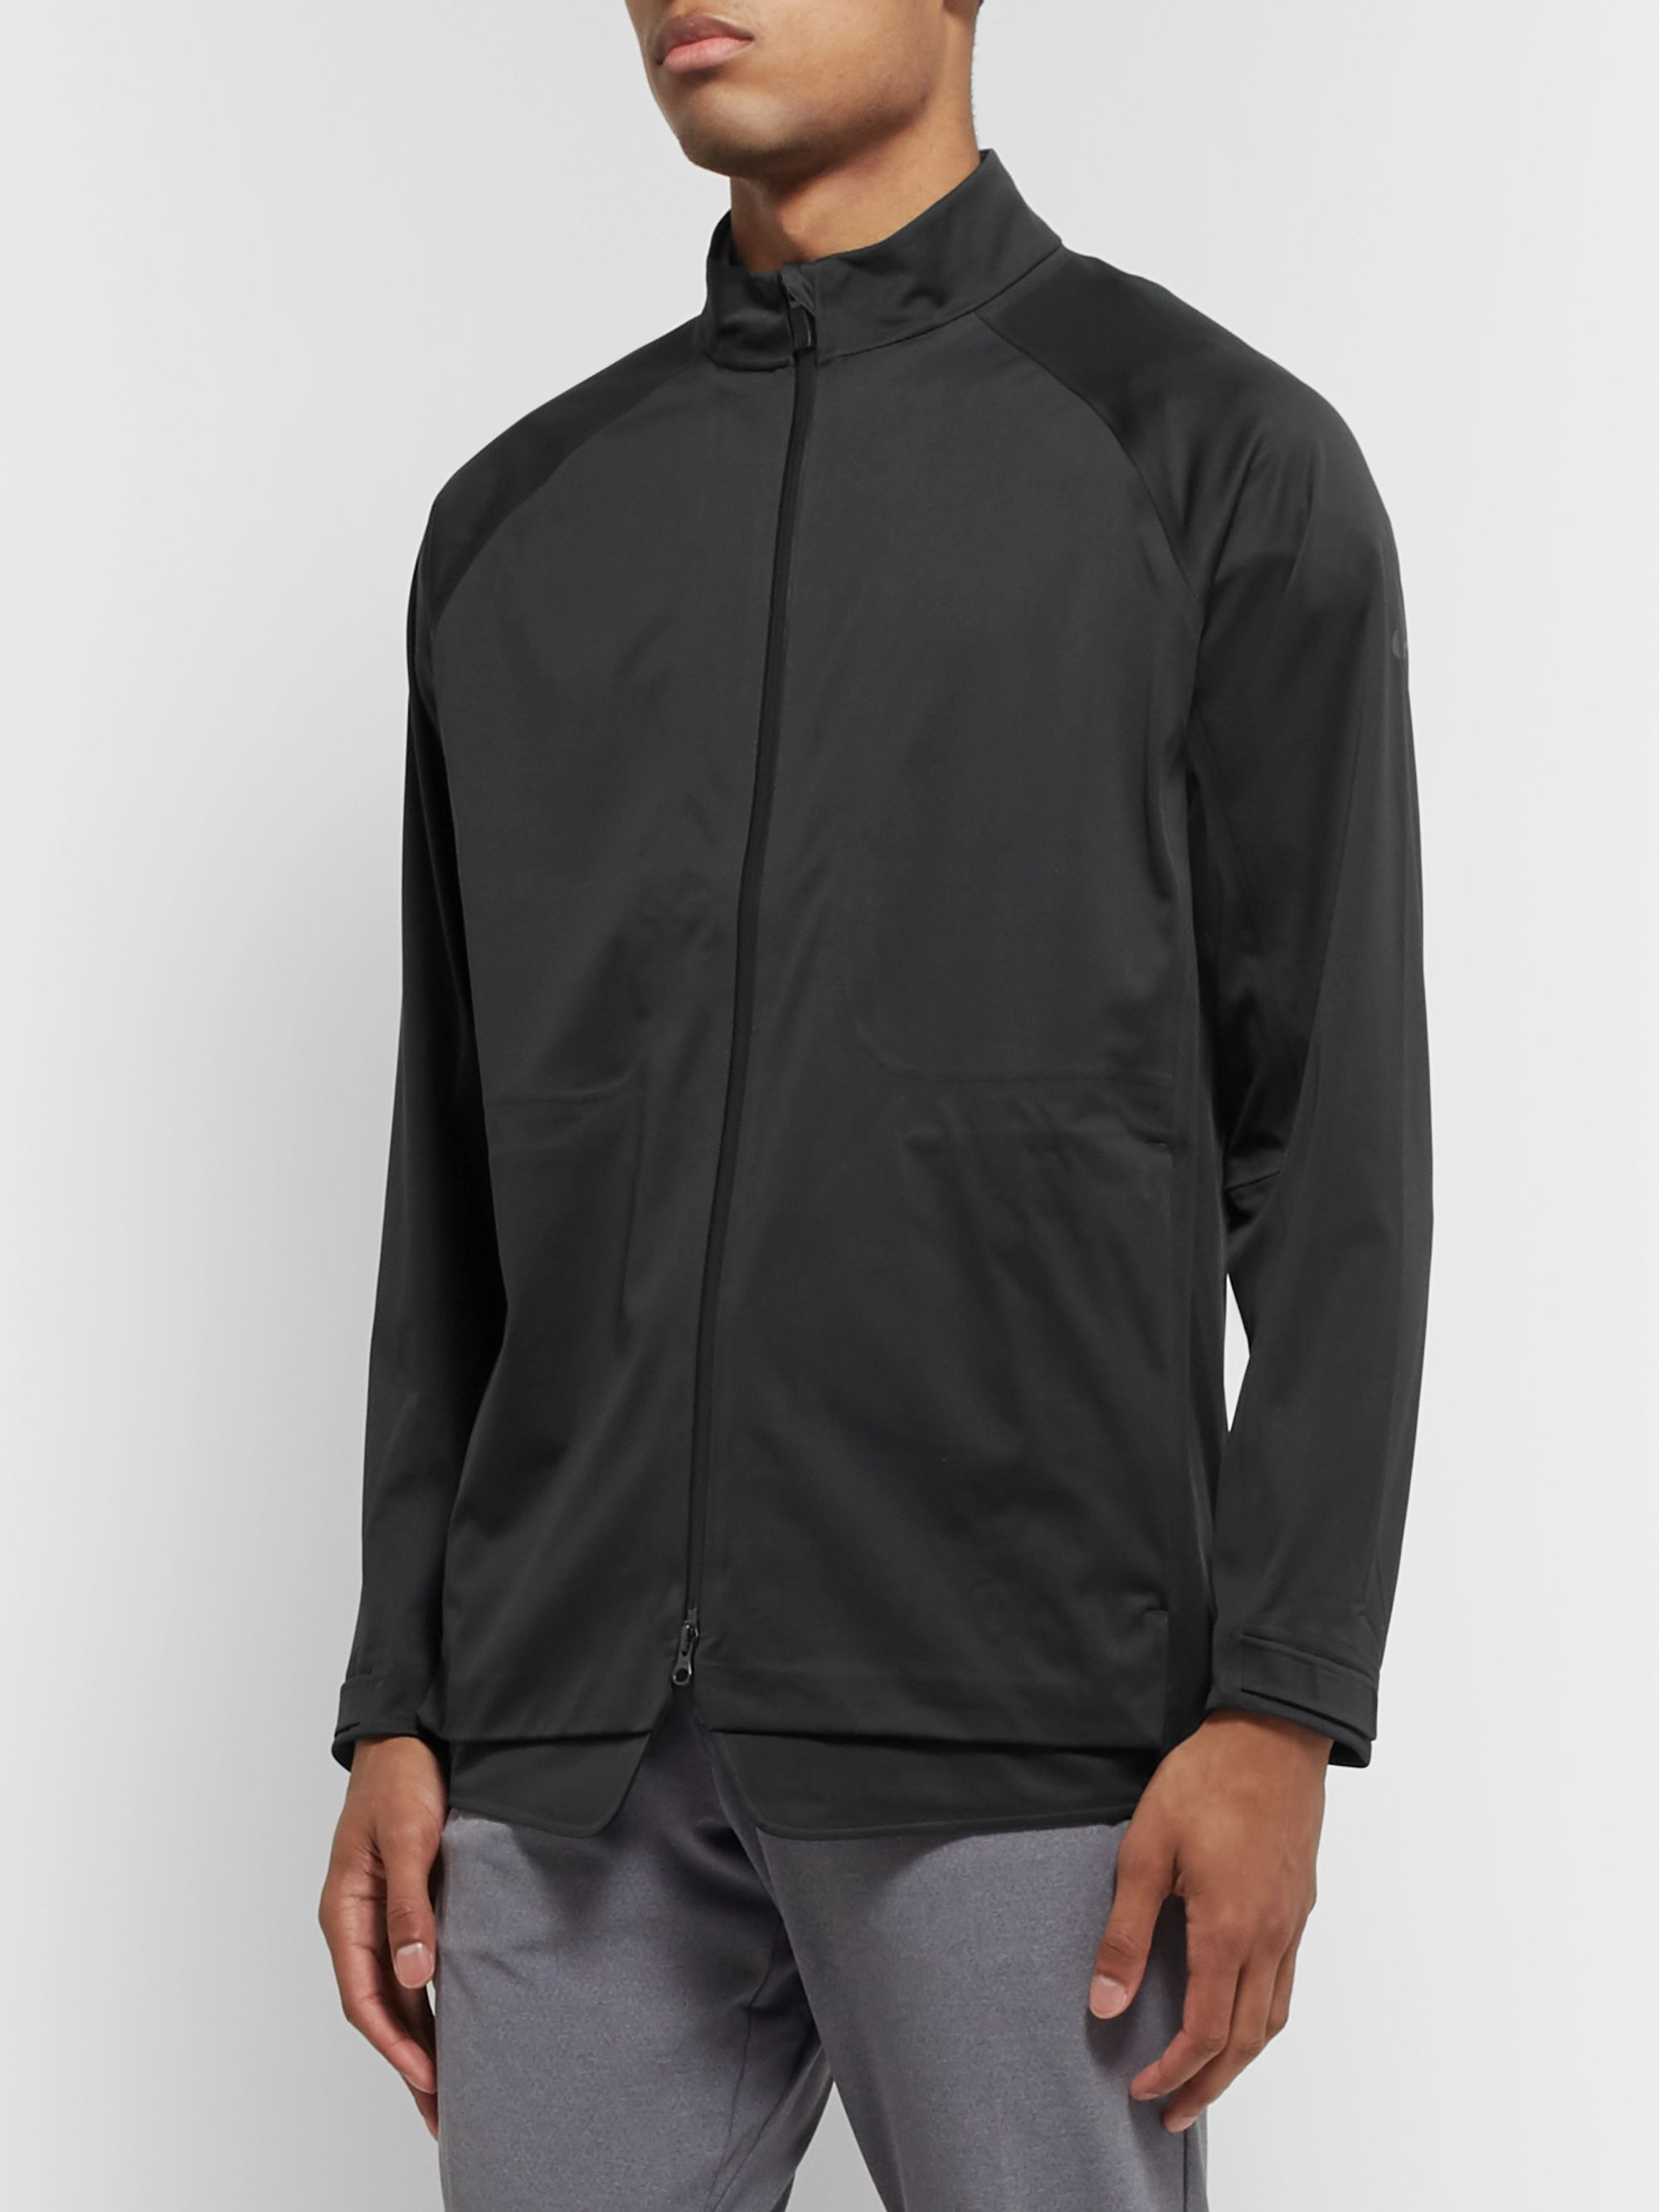 Nike Golf AeroShield Golf Jacket